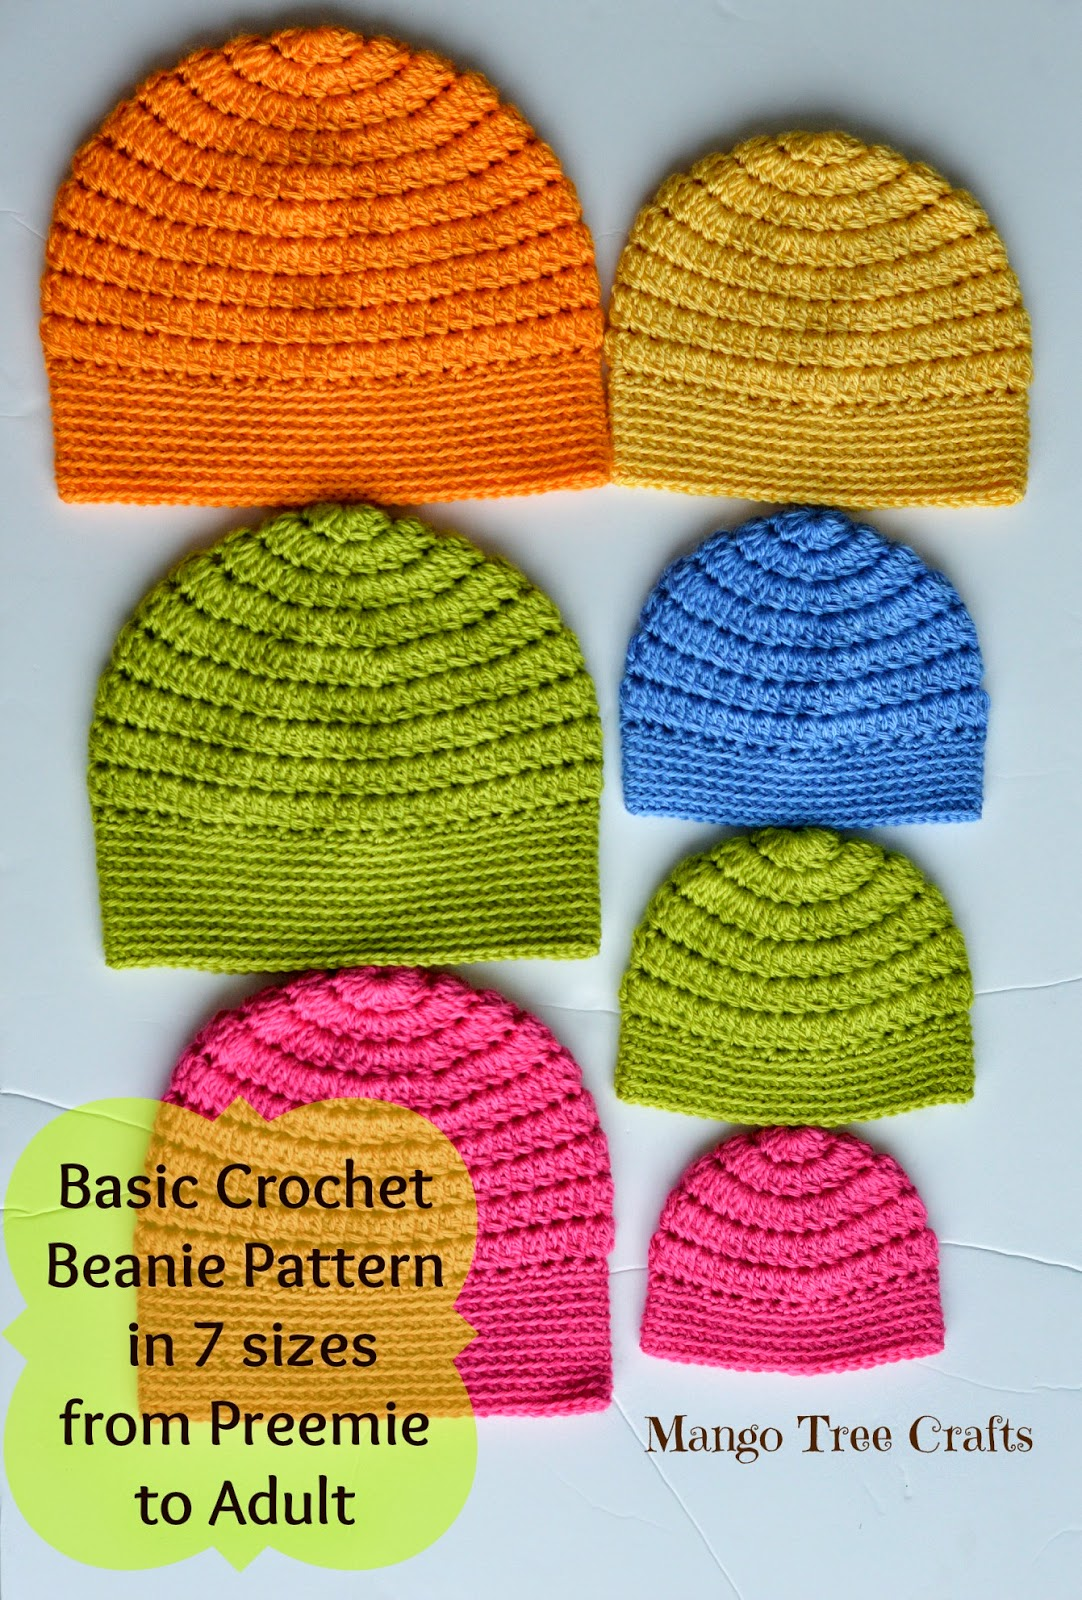 All Crochet Free Patterns : Mango Tree Crafts: Free Basic Beanie Crochet Pattern All Sizes